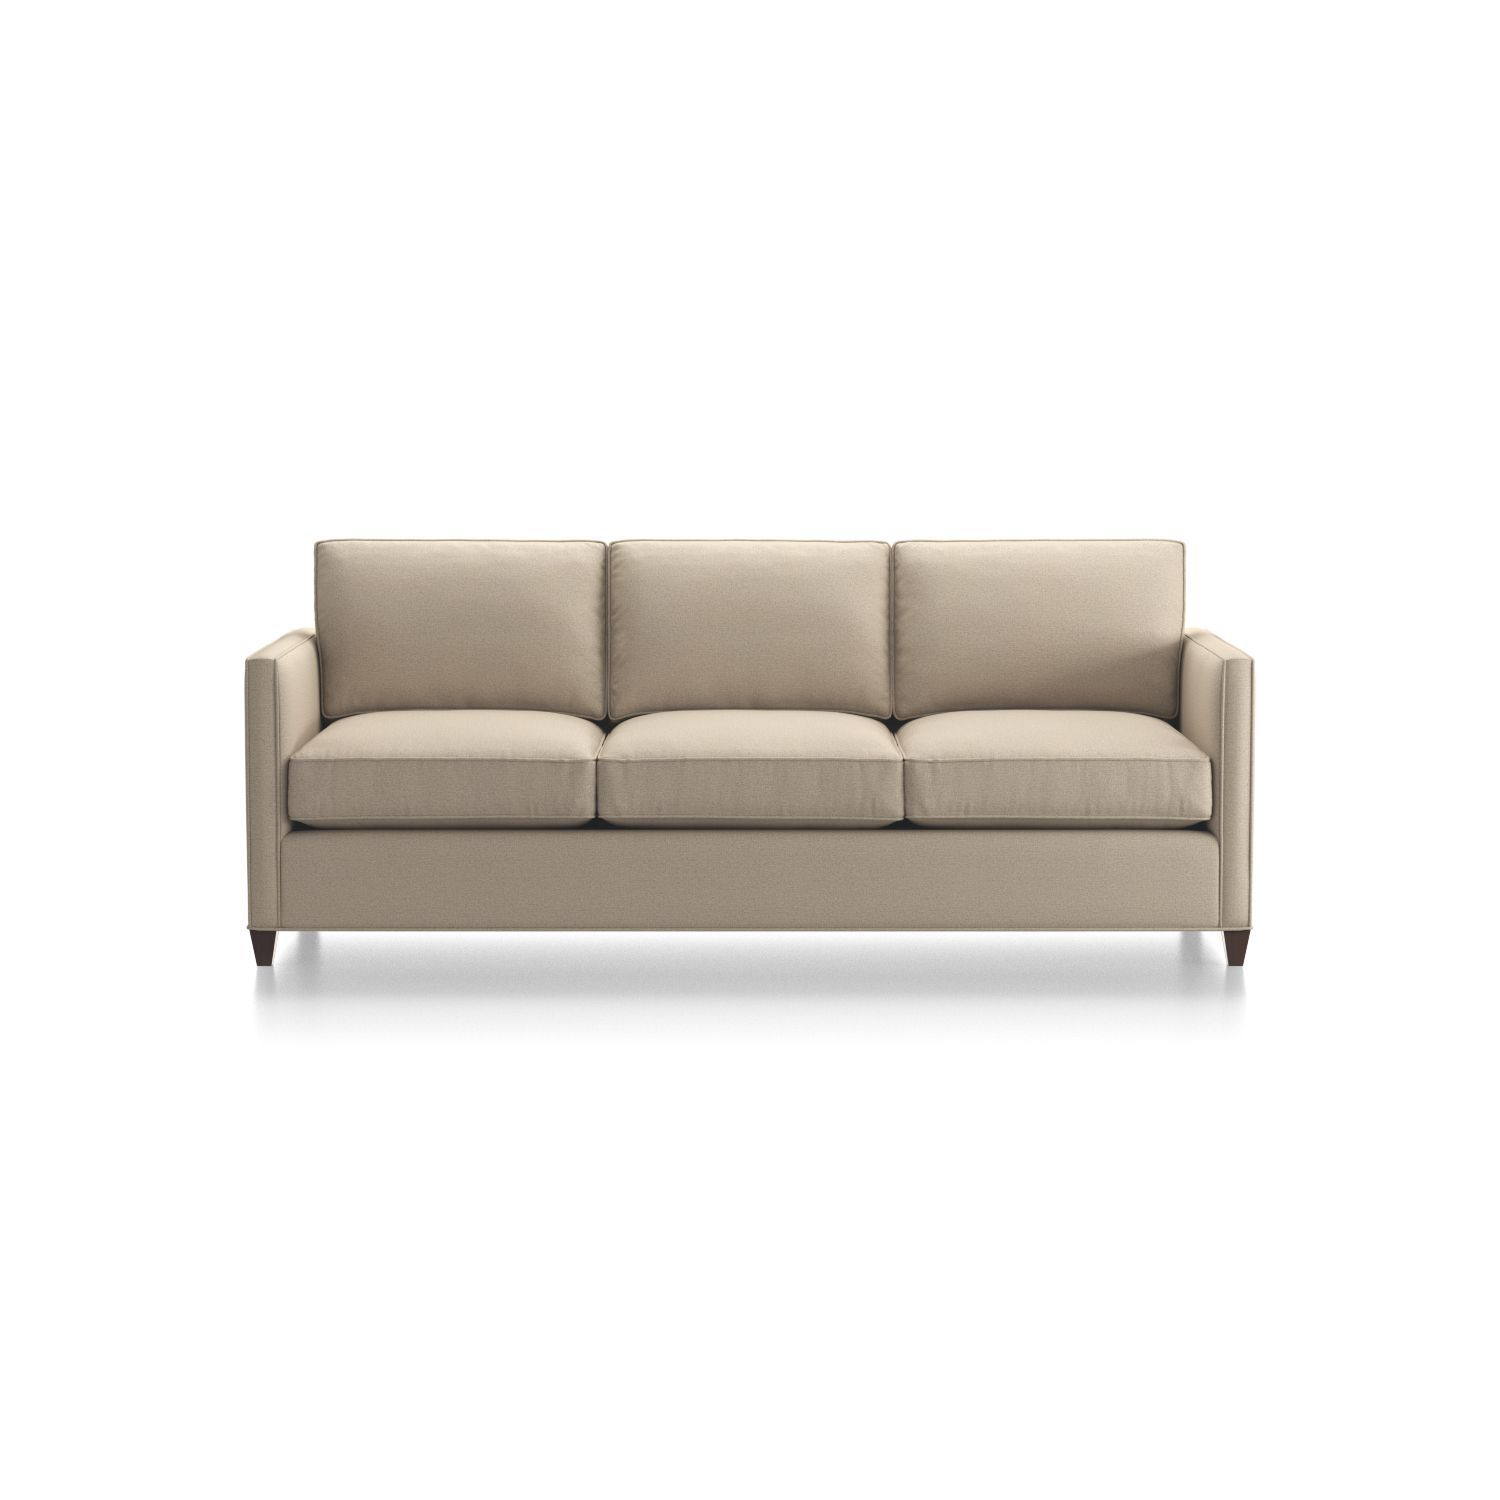 Shop Dryden 3 Seat Sofa For A Bit Of Sparkle And Classic